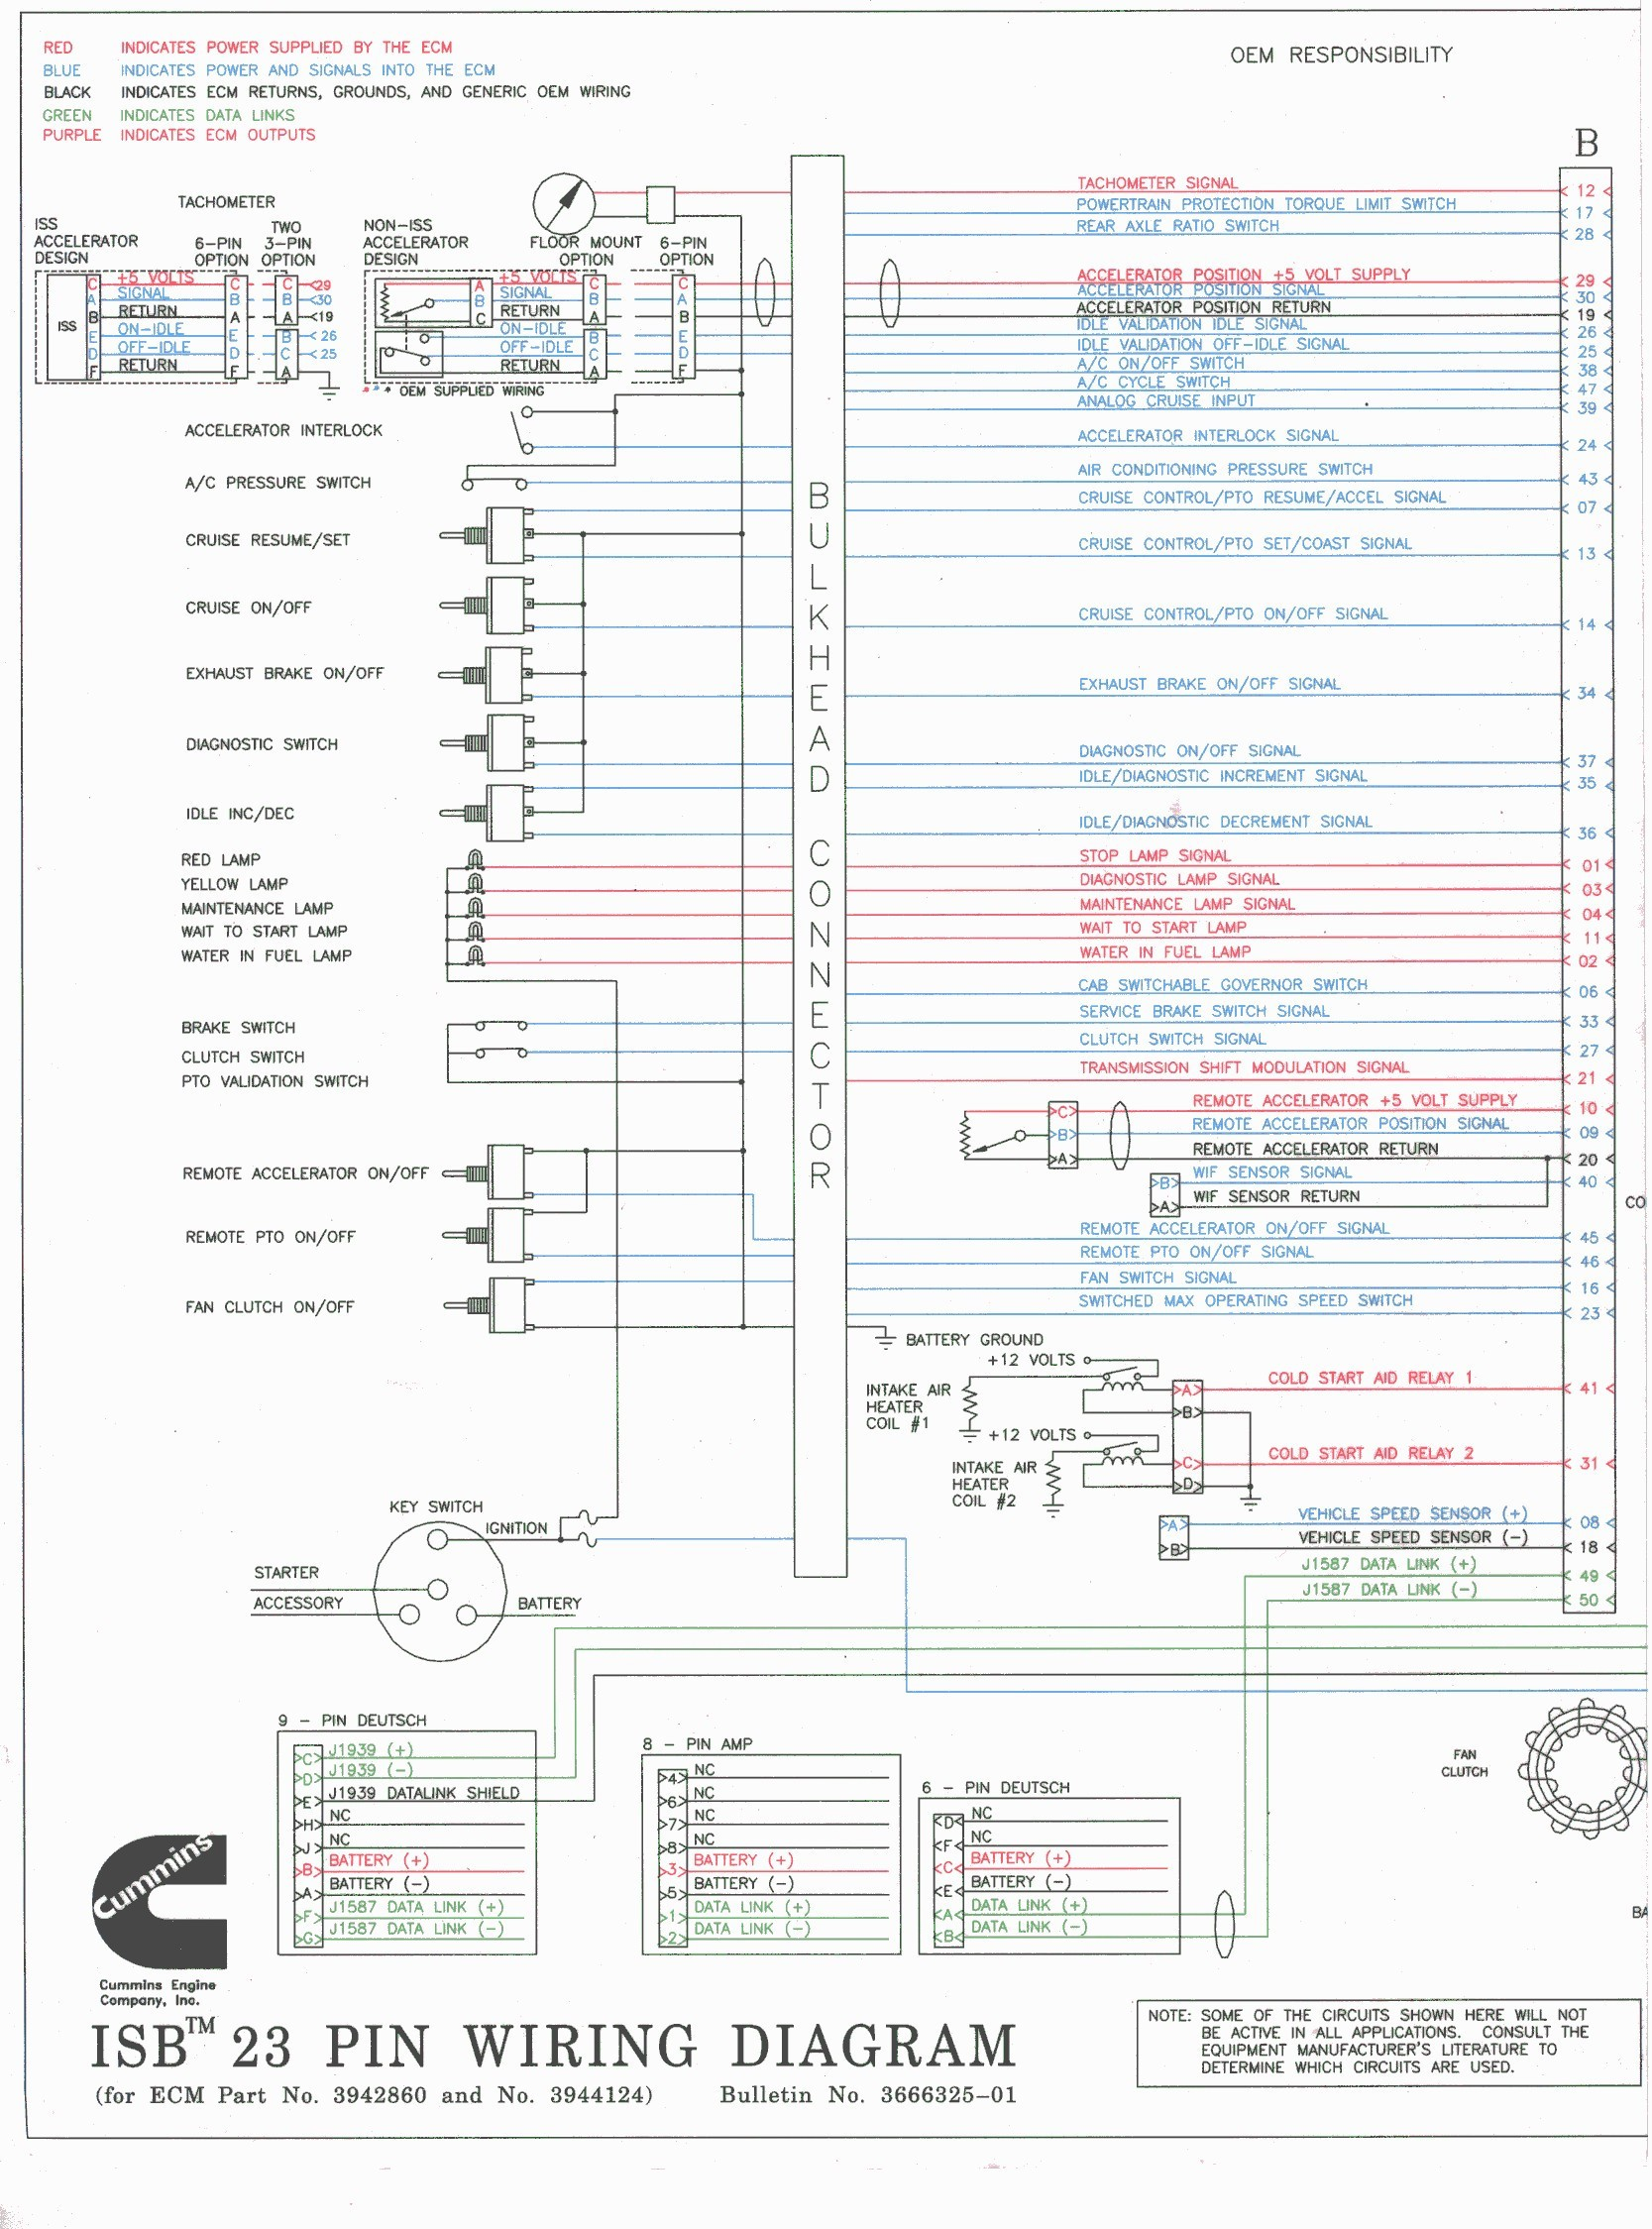 2002 Dodge Intrepid Radio Wiring Diagram from detoxicrecenze.com